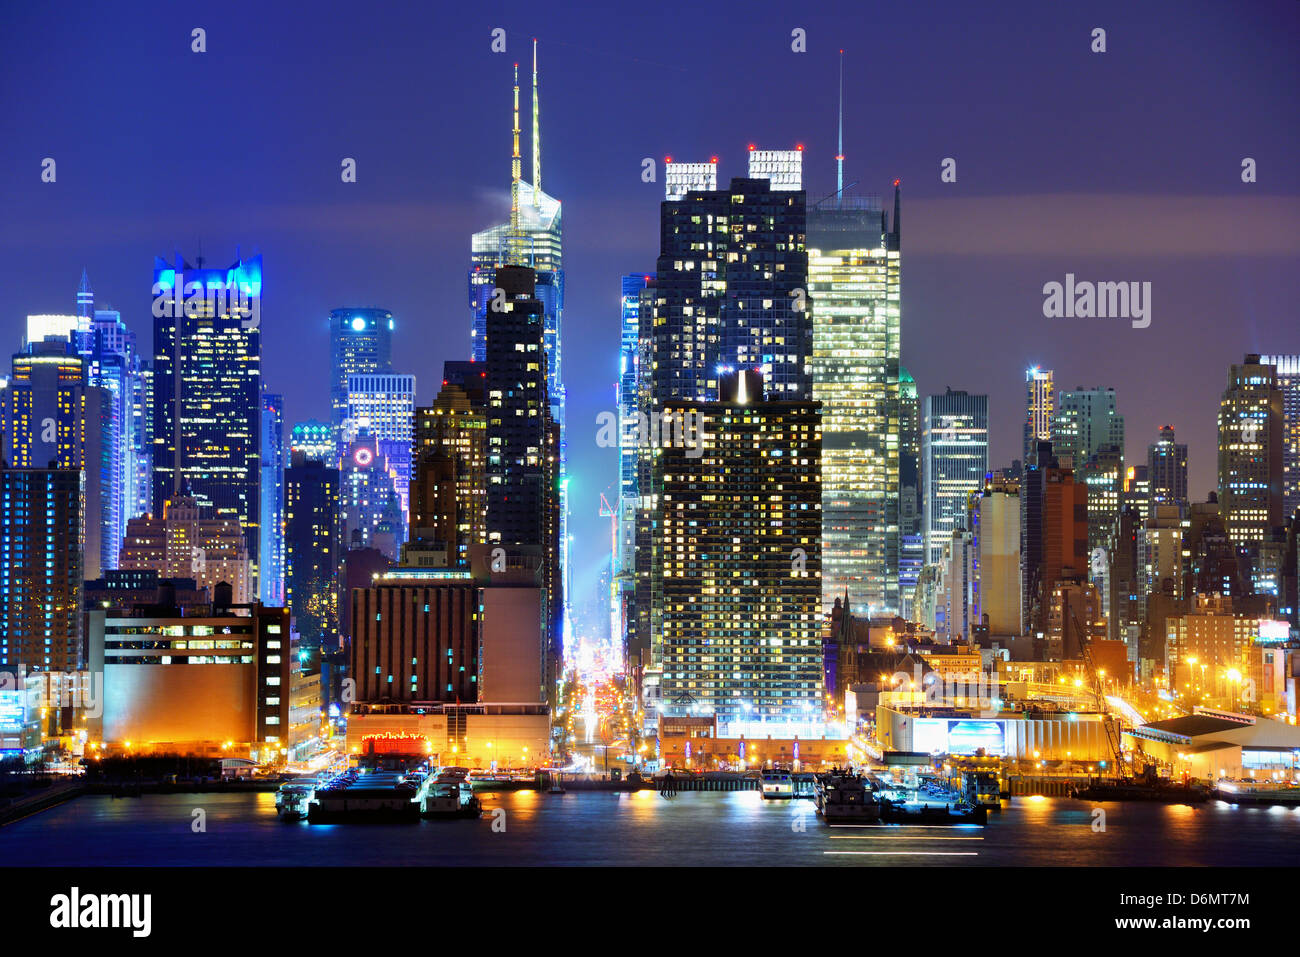 Midtown Manhattan at 42nd Street viewed from across the Hudson River in New York City. Stock Photo